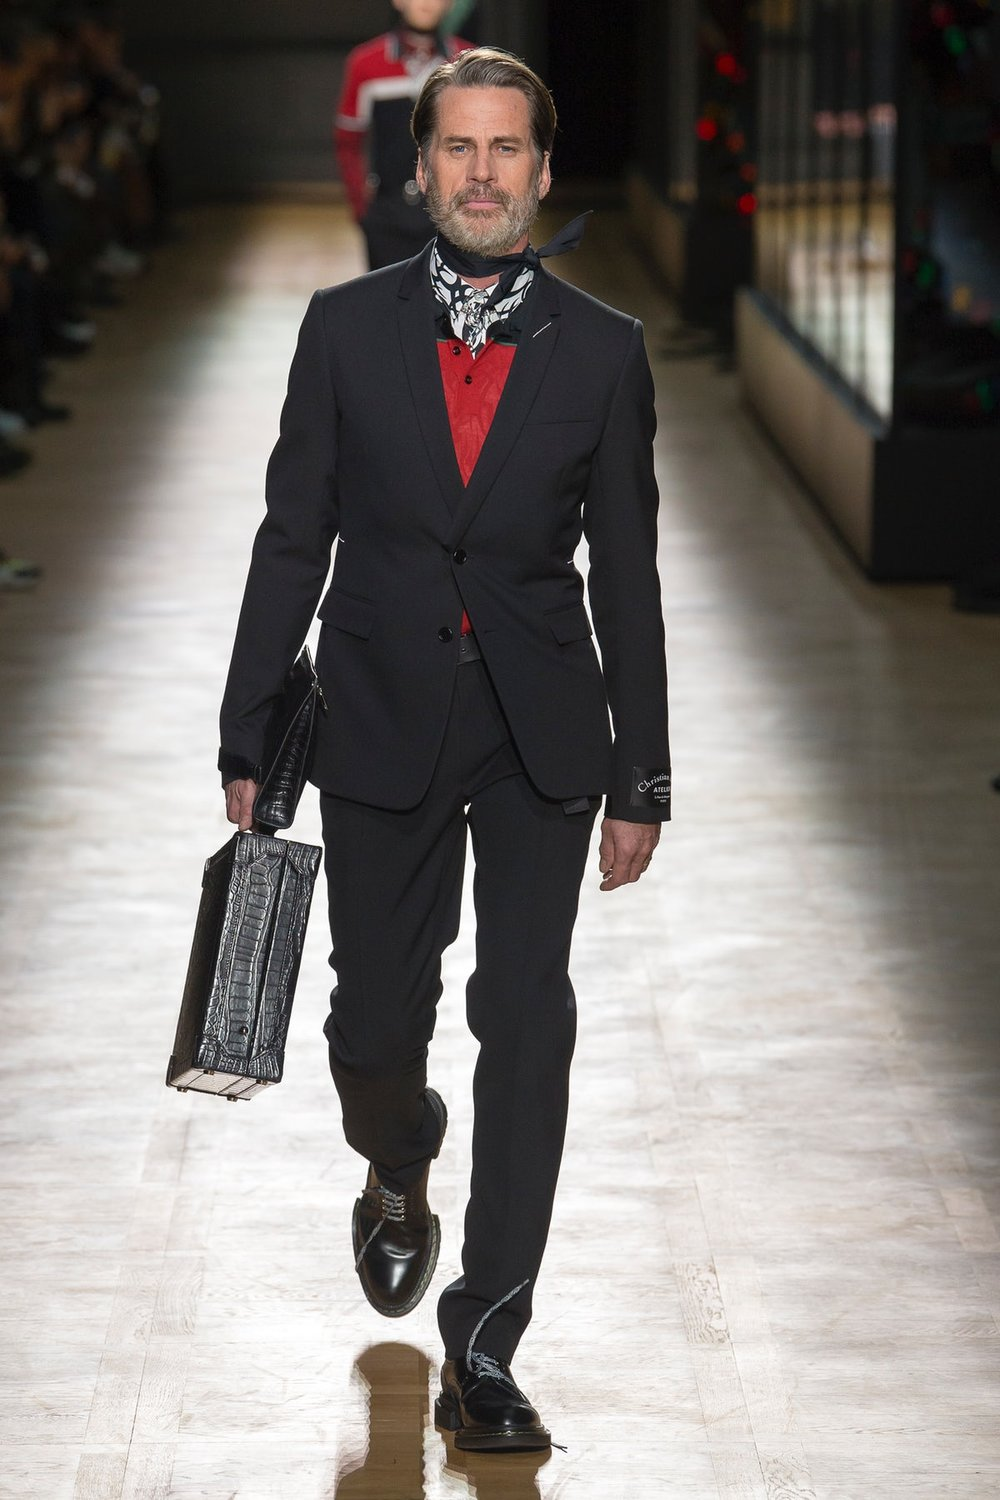 dior_homme_look_12_menswear_autumn_2018.jpeg